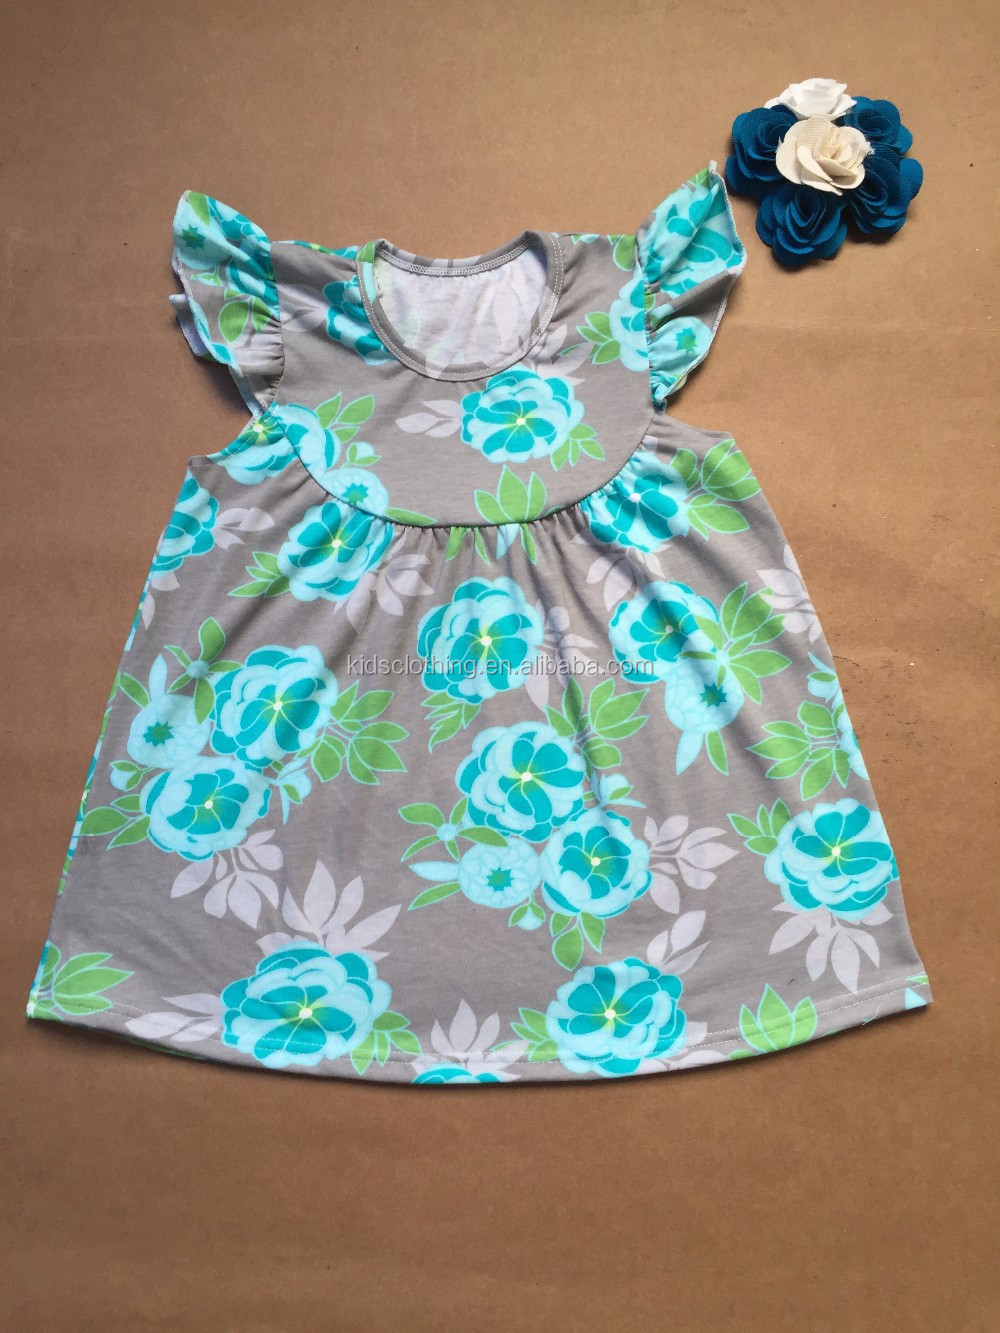 New arrival unique frocks latest party wear dresses for girls ruffle ...